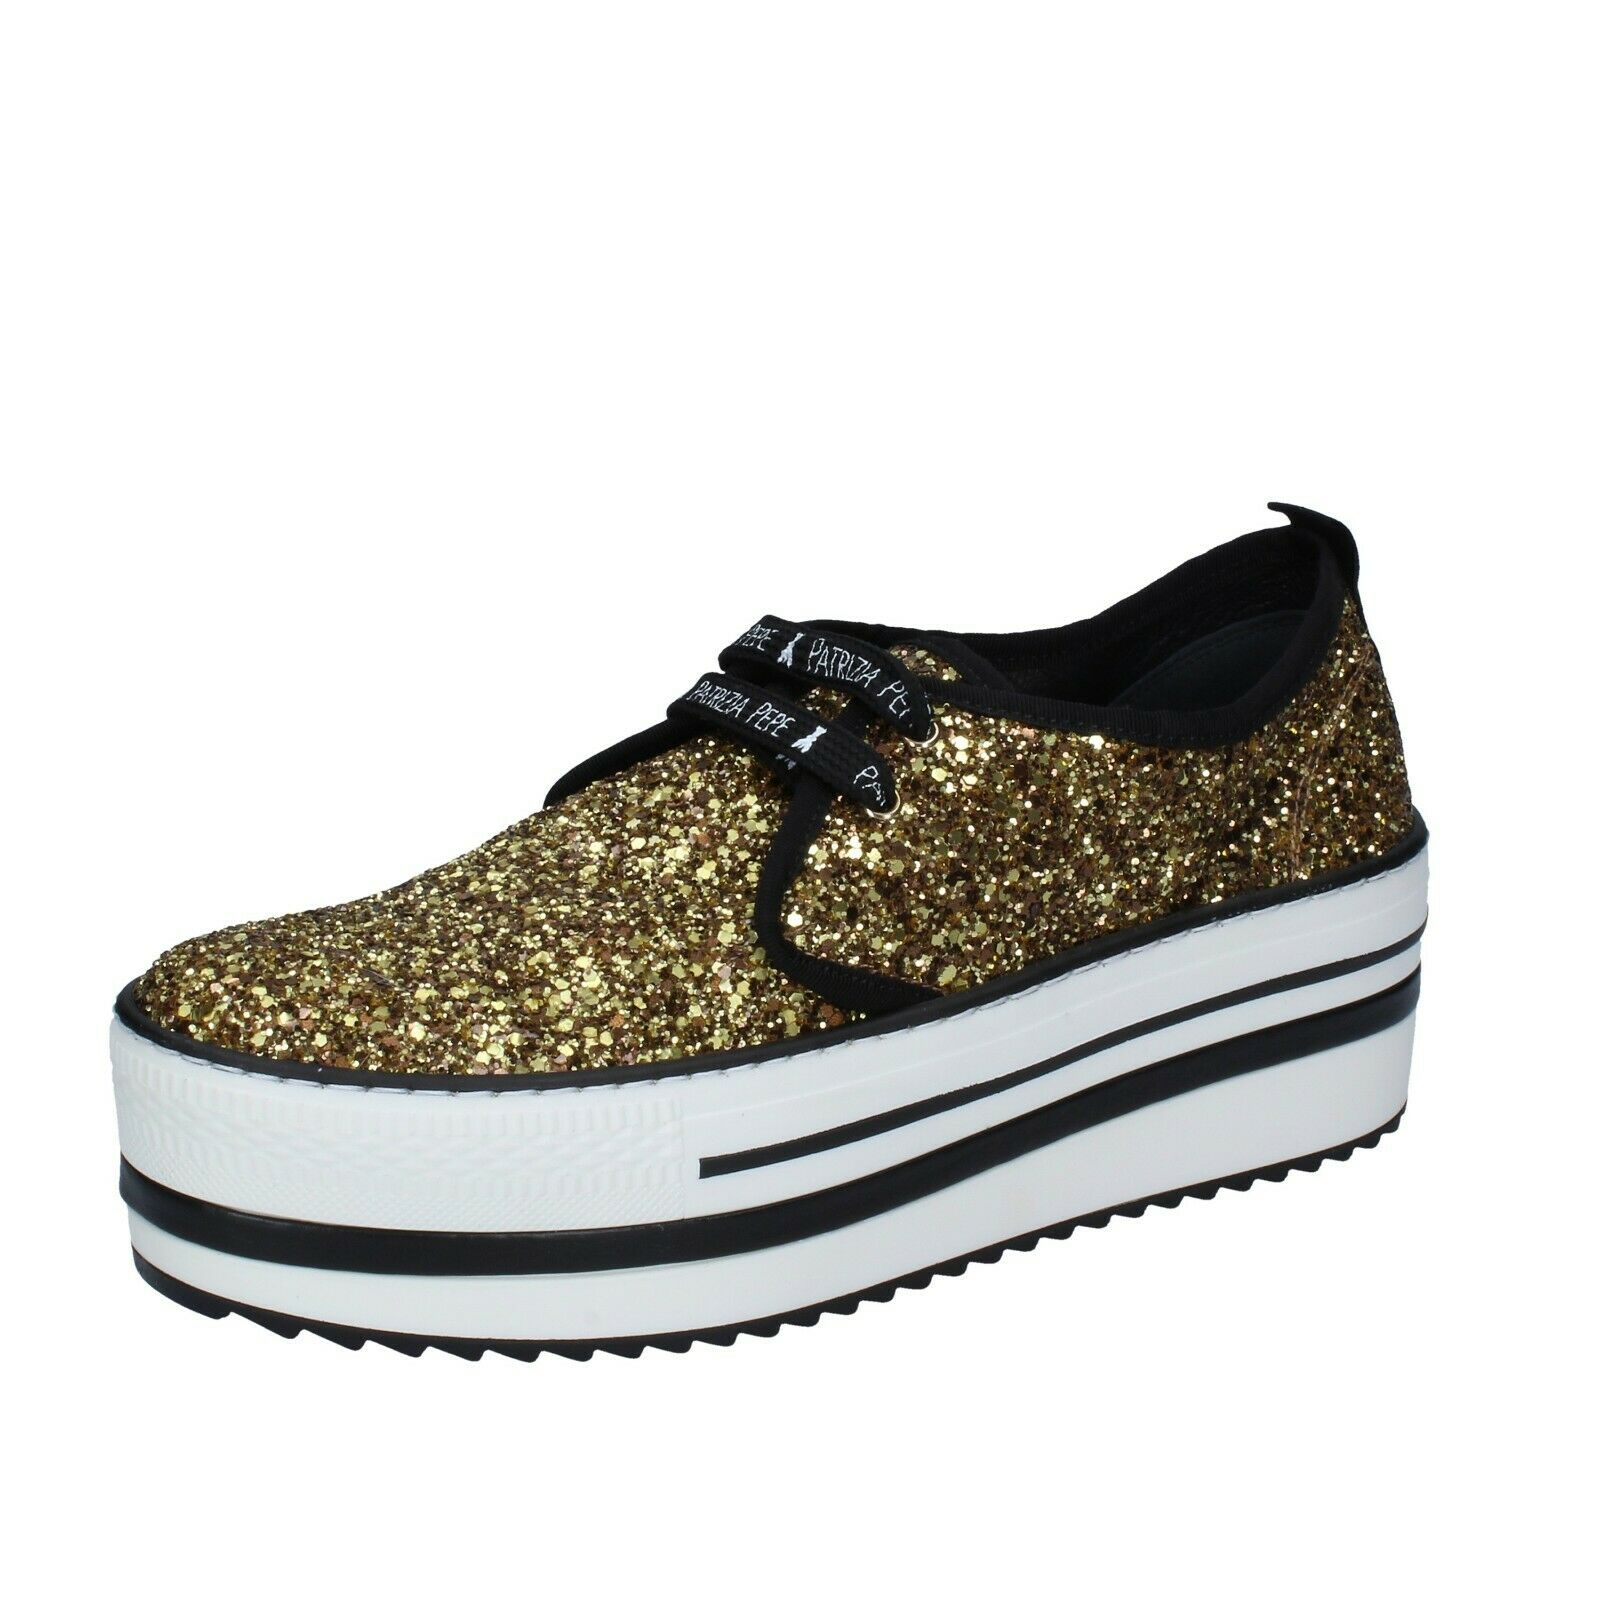 Chaussures Femmes PATRIZIA PEPE 7 (UE 37) Baskets or Glitter Textile BS242-37